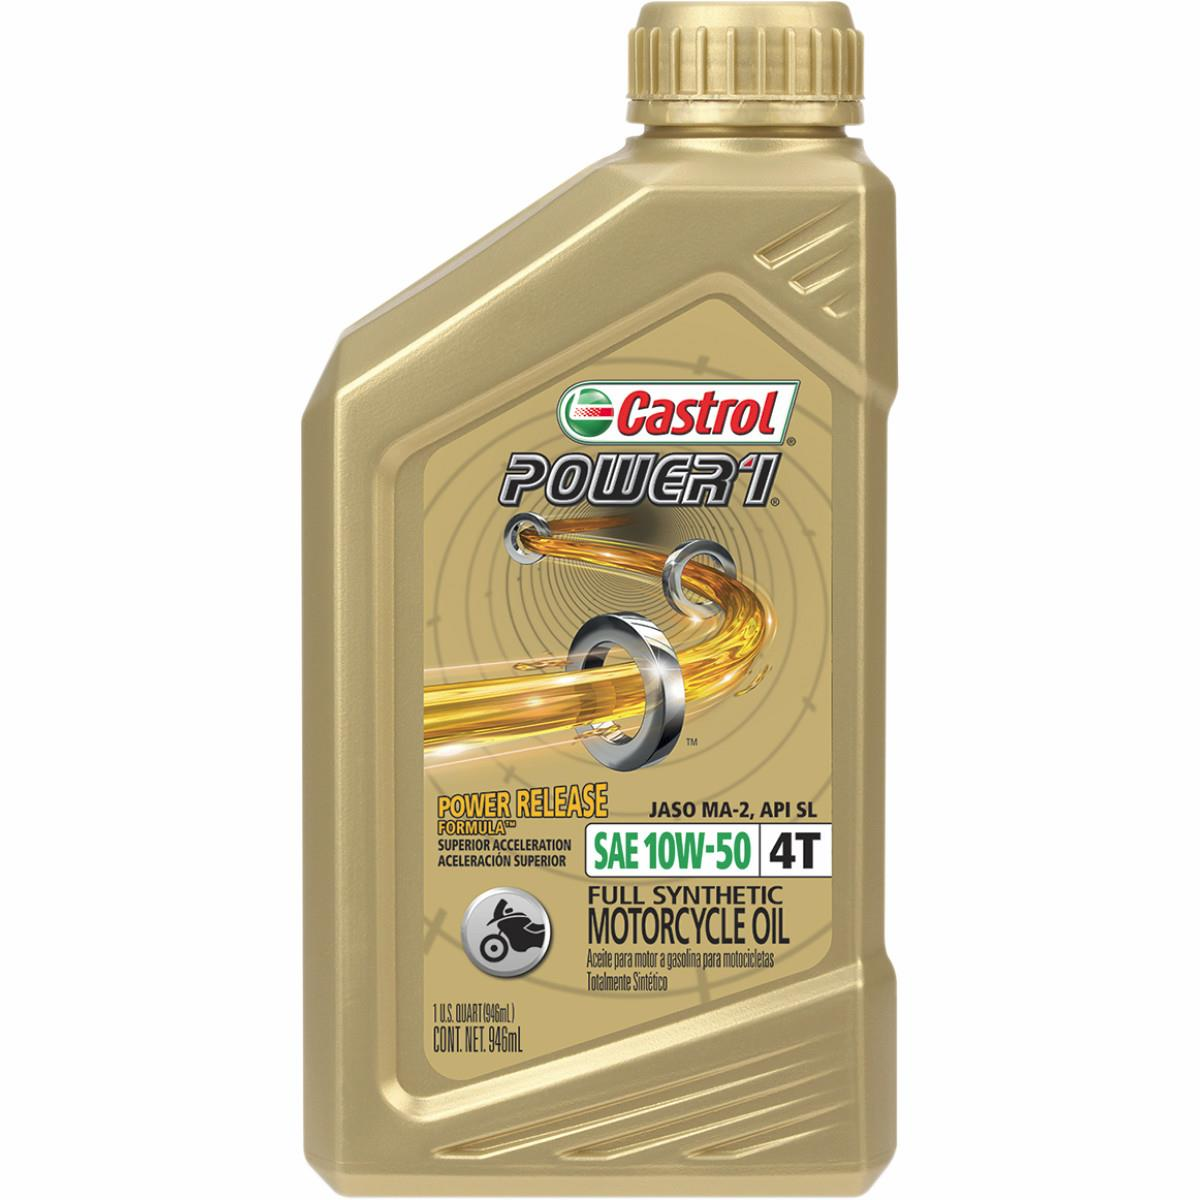 Castrol engine oil drum castrol free engine image for for Motor oil for motorcycles